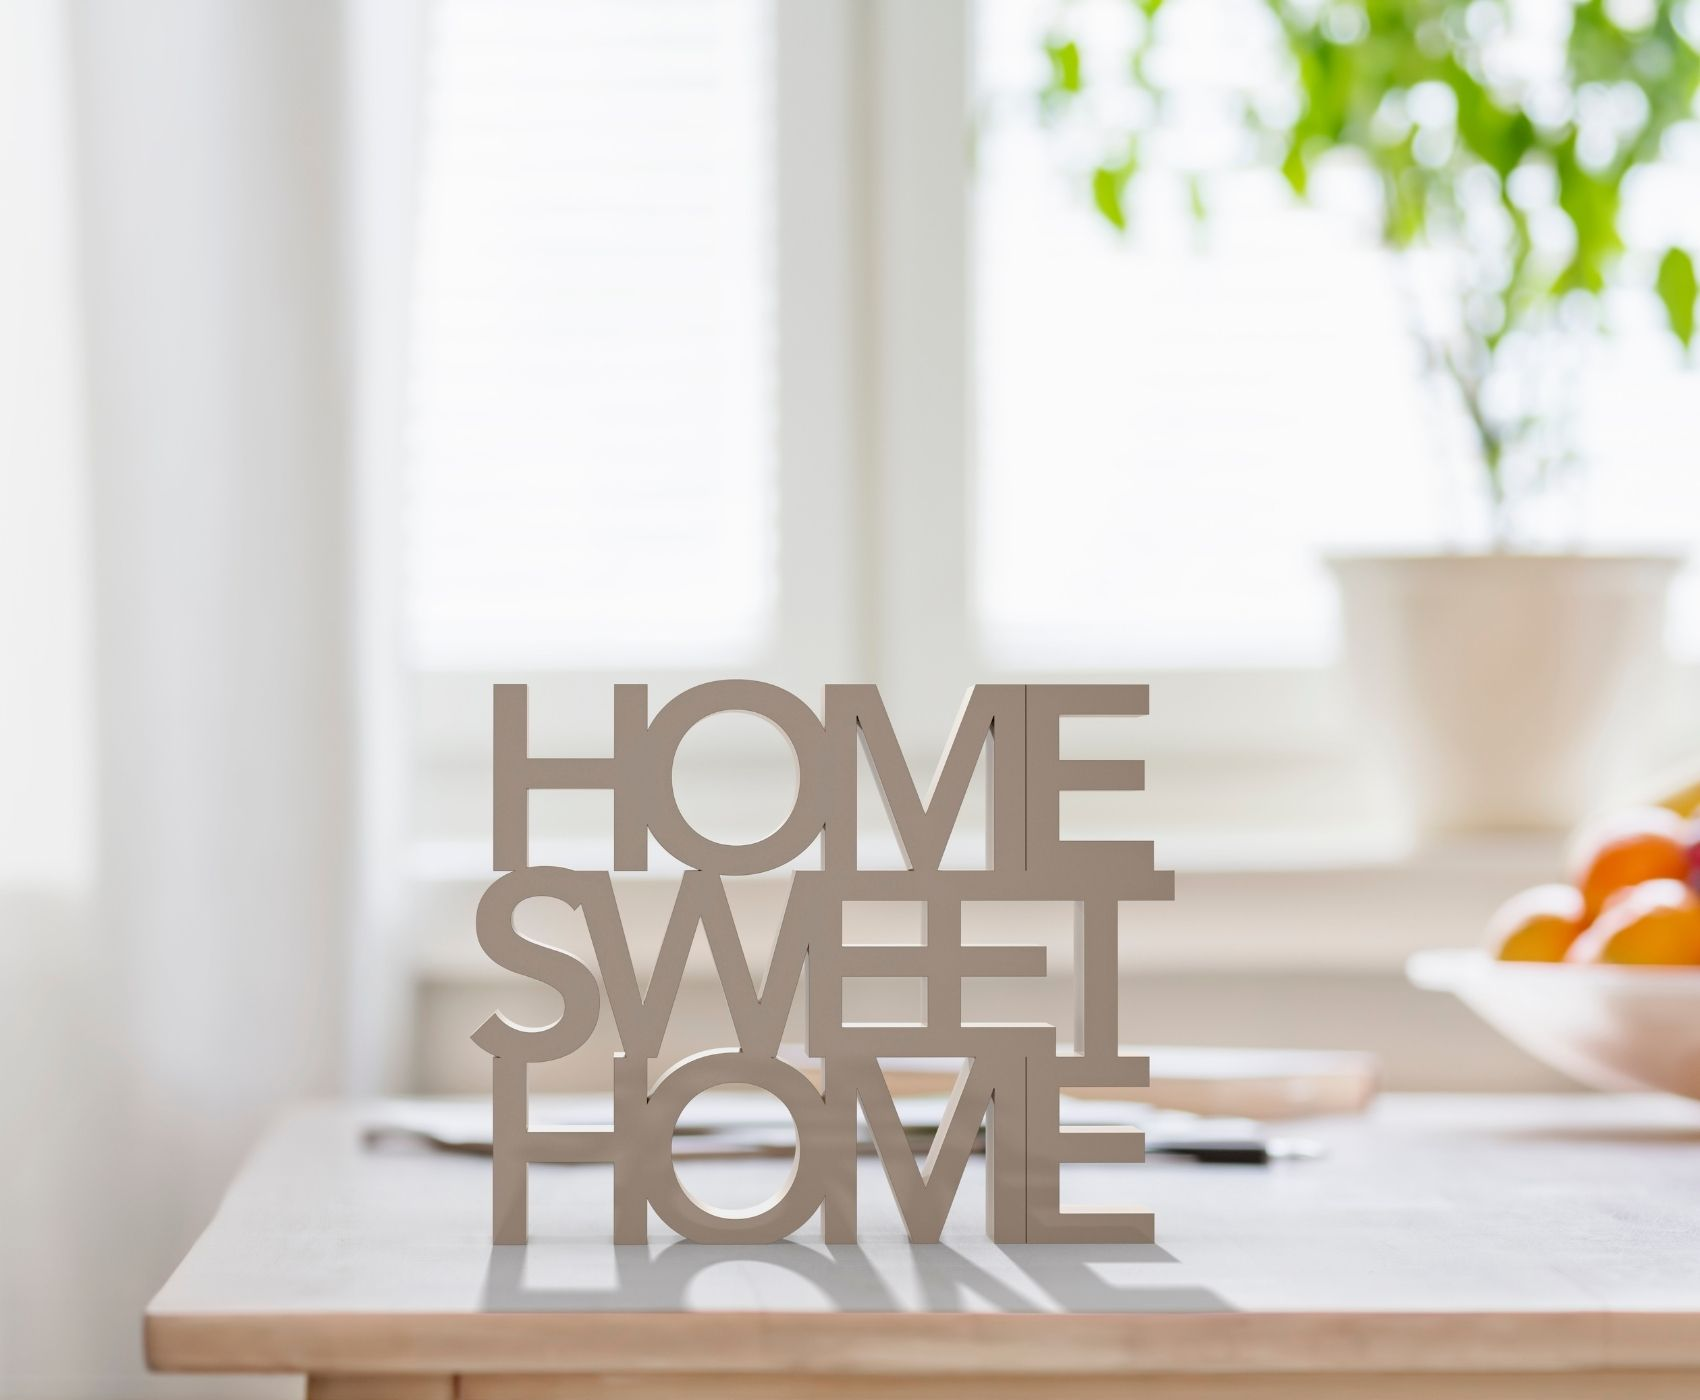 Looking for some help getting more things done around your house? These Simple Time-Saving Tips for Busy Moms includehelpful hacks and clevershortcuts tohelp you get more done around the house.